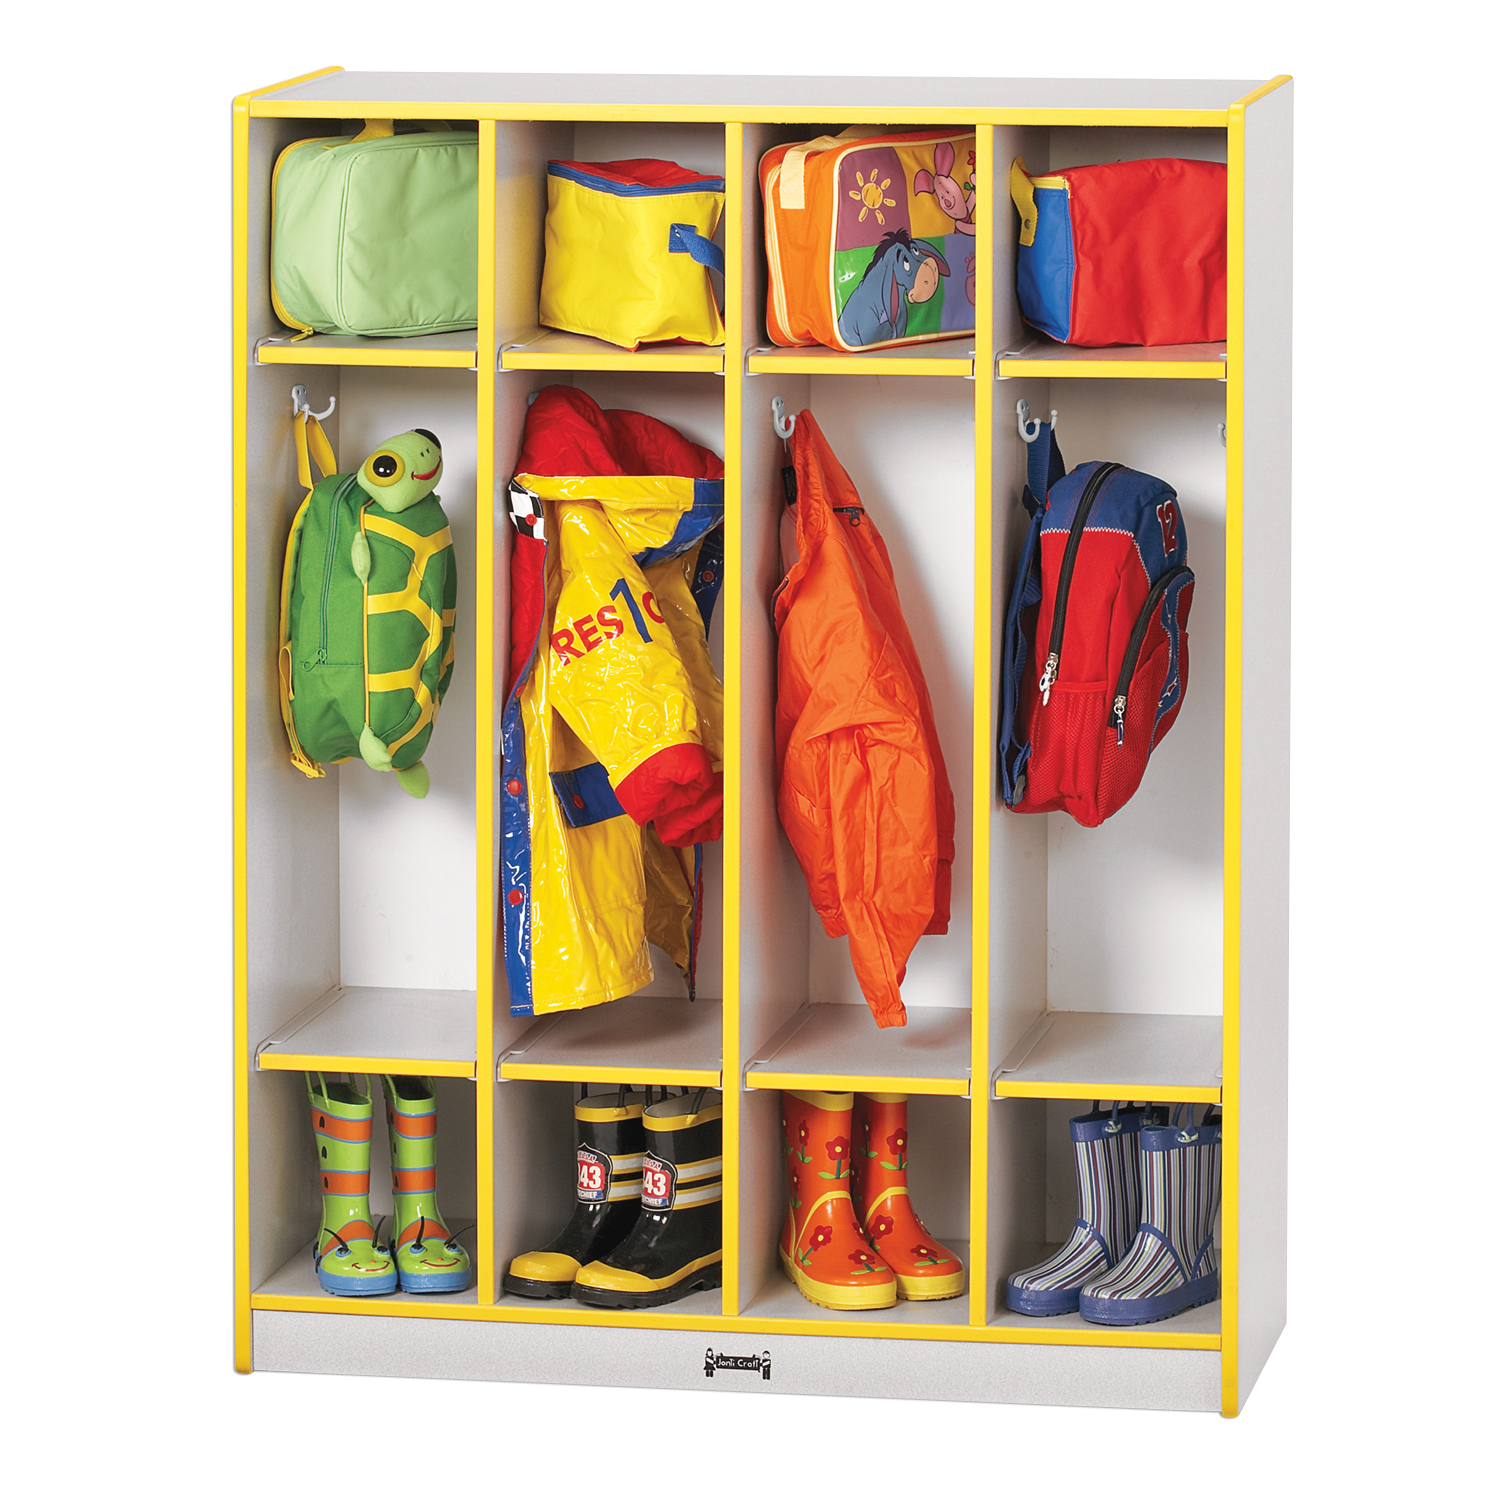 Offex School Kids Belonging Storage 4 Section Coat Locker - Green